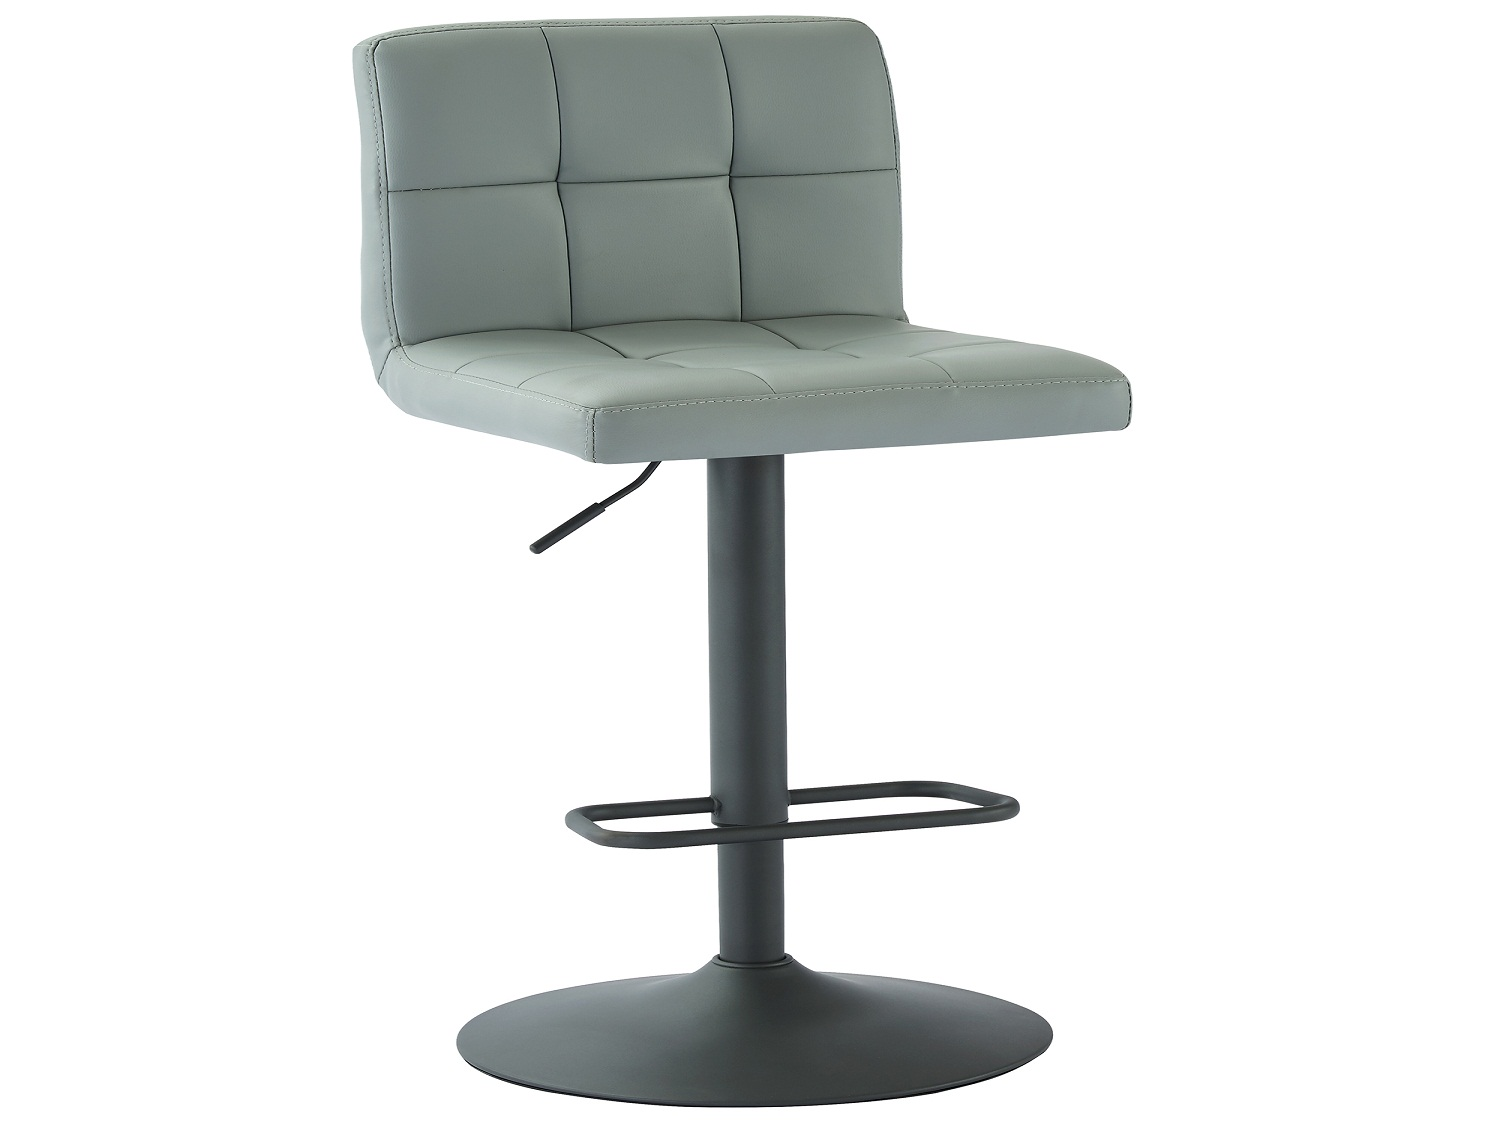 FUSION-GAS LIFT STOOL-GREY FAUX LEATHER, 841173032630, Bar Stools, FUSION-GAS LIFT STOOL-GREY FAUX LEATHER from Dropship by Midha Furniture serving Brampton, Mississauga, Etobicoke, Toronto, Scraborough, Caledon, Cambridge, Oakville, Markham, Ajax, Pickering, Oshawa, Richmondhill, Kitchener, Hamilton, Cambridge, Waterloo and GTA area